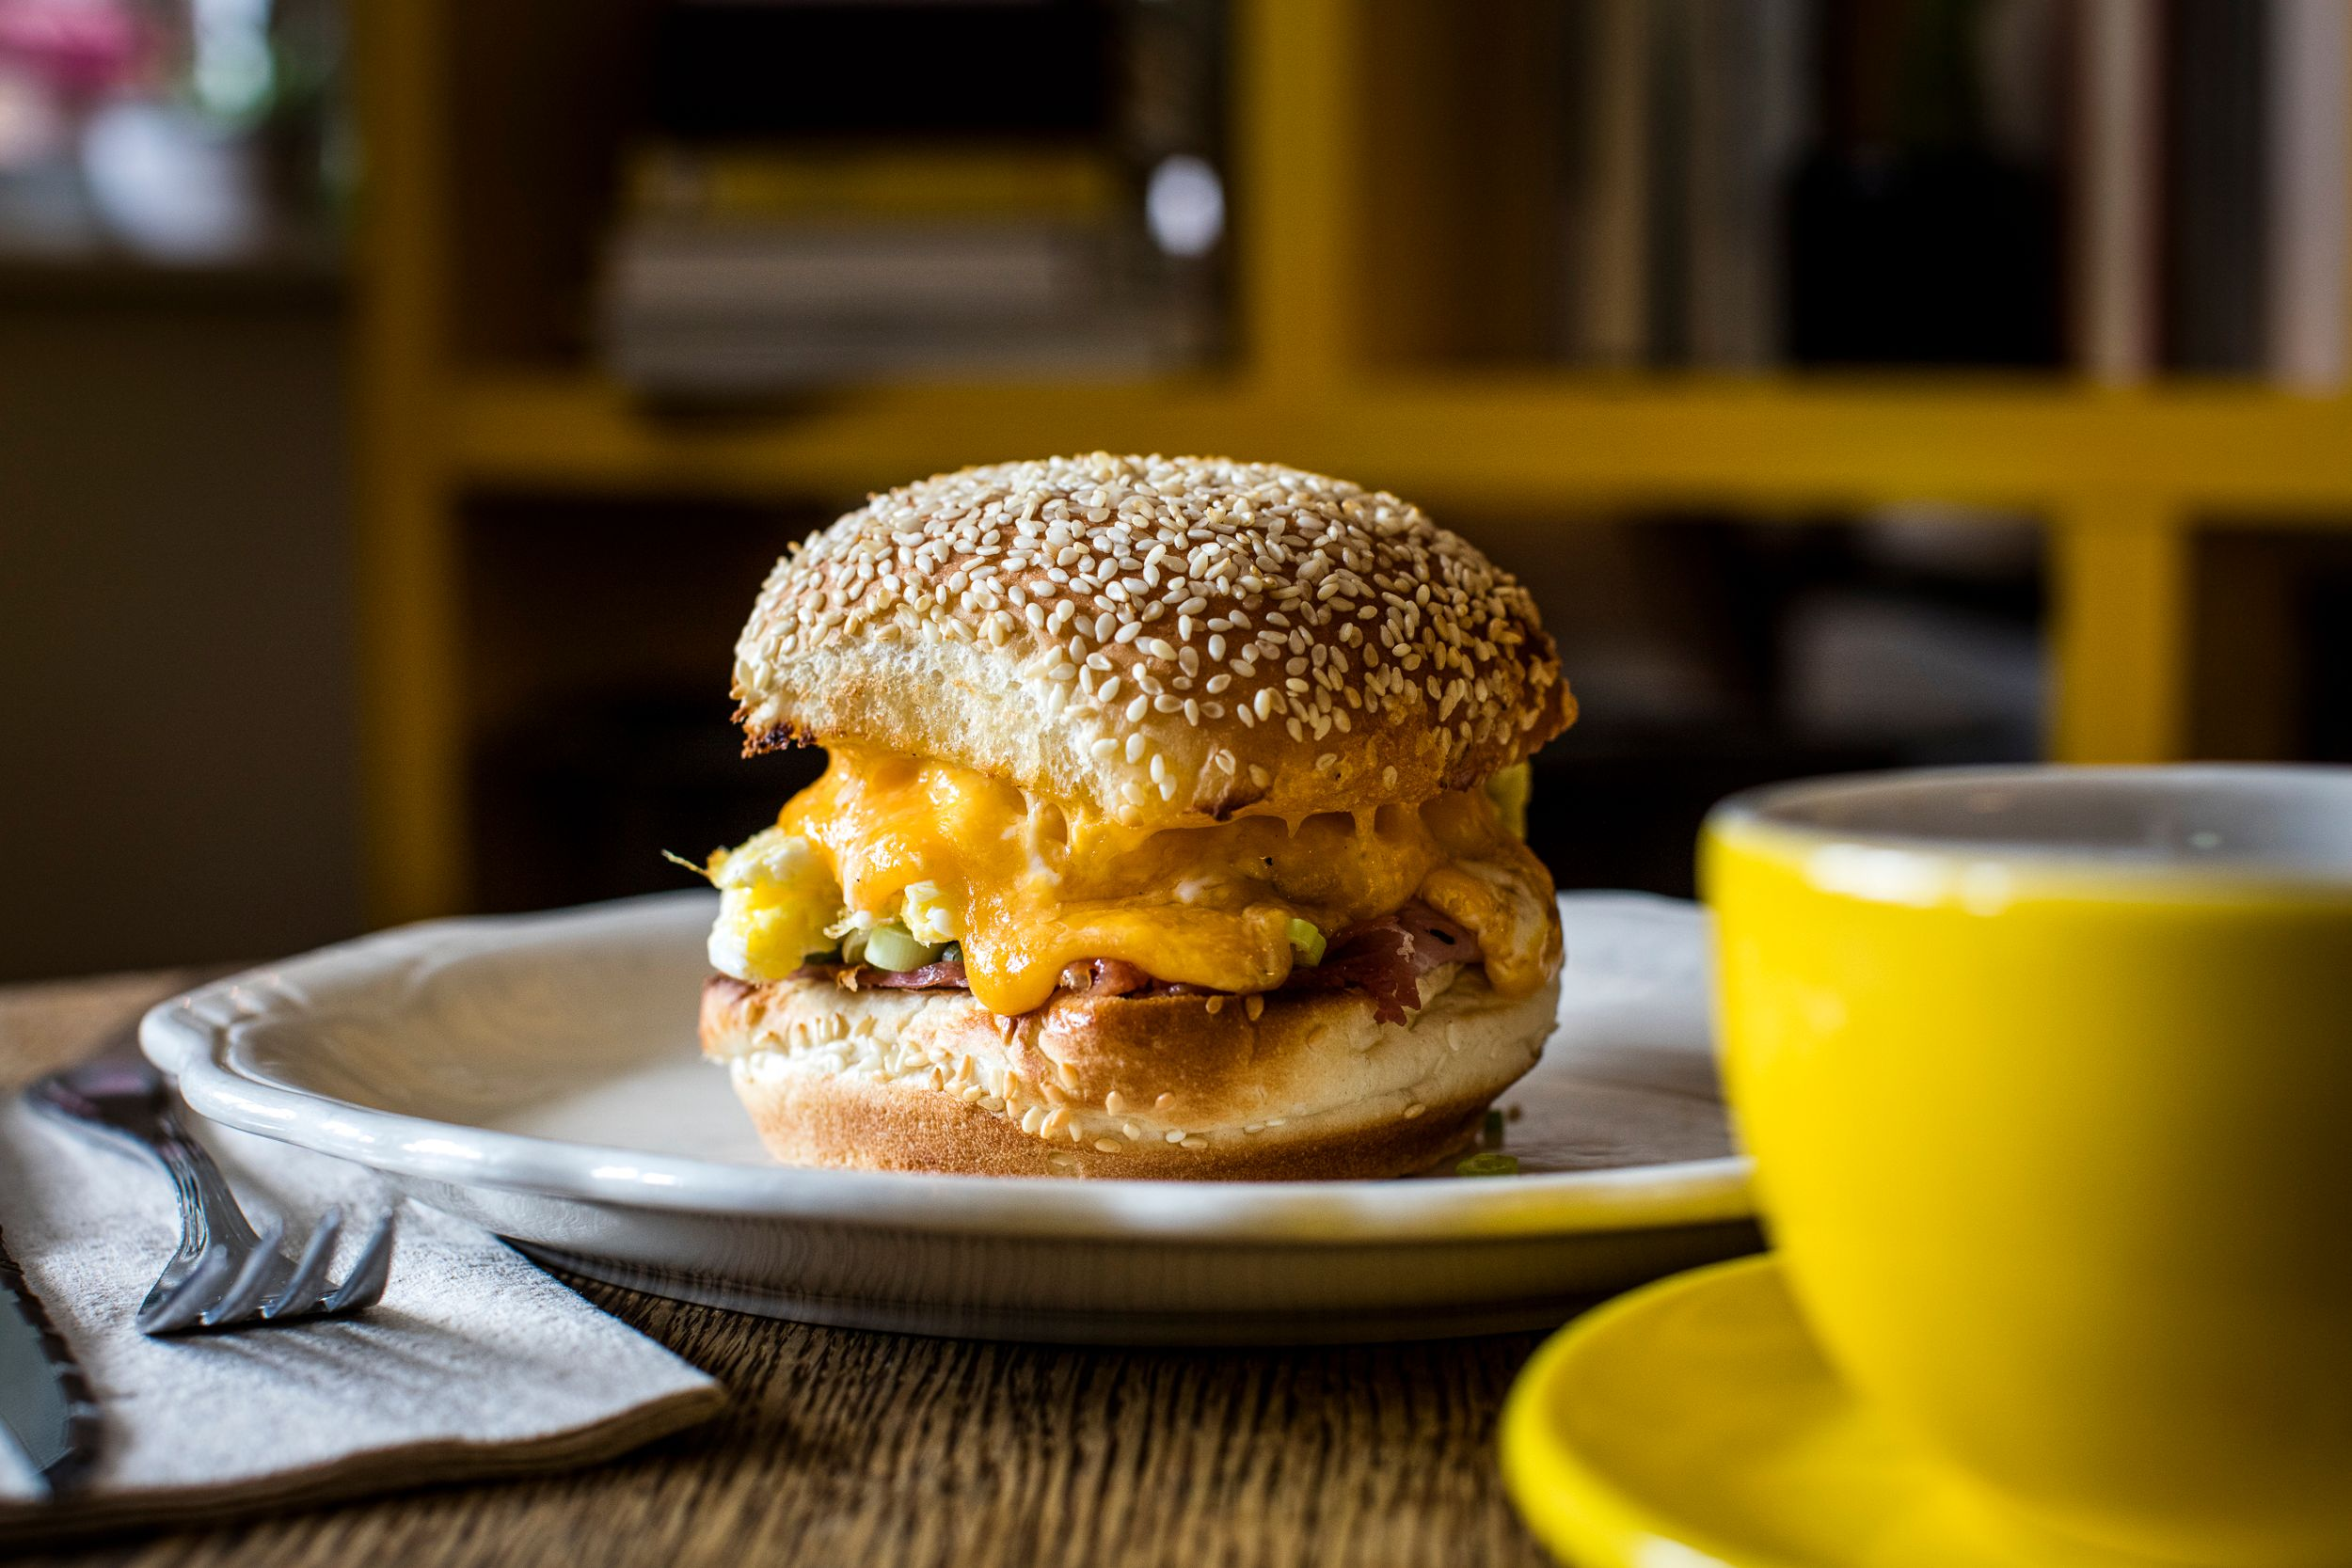 A close-up shot of a cheesy egg sandwich on a sesame seed bun with a yellow mug of coffee in the foreground.